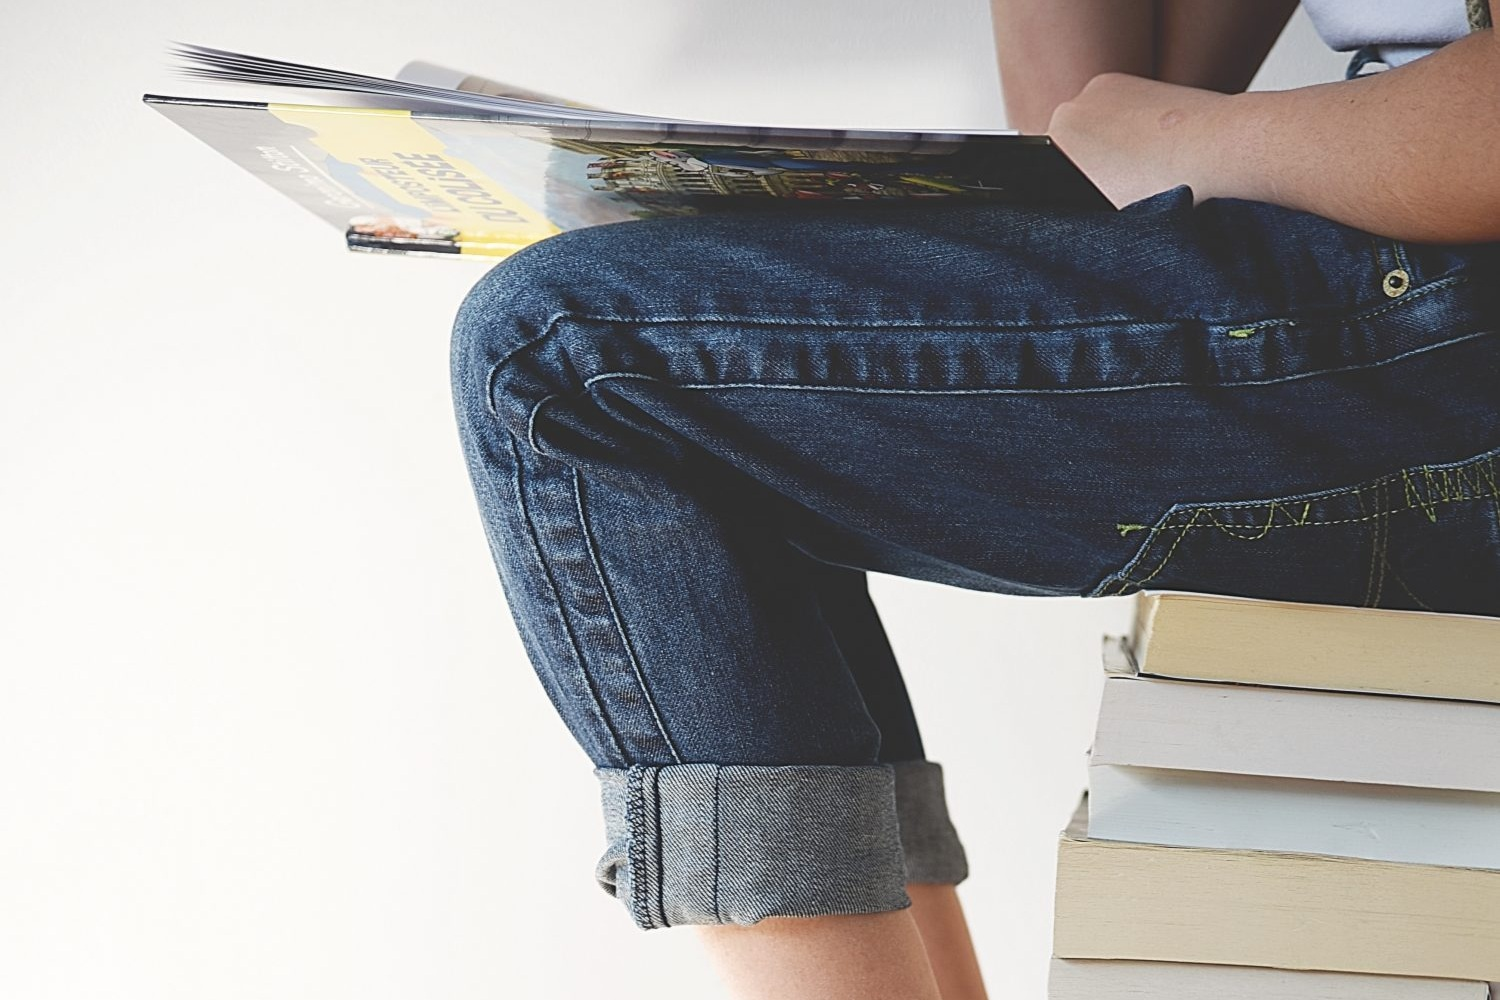 Person seated on stack of books, close-up of bare feet and jeans